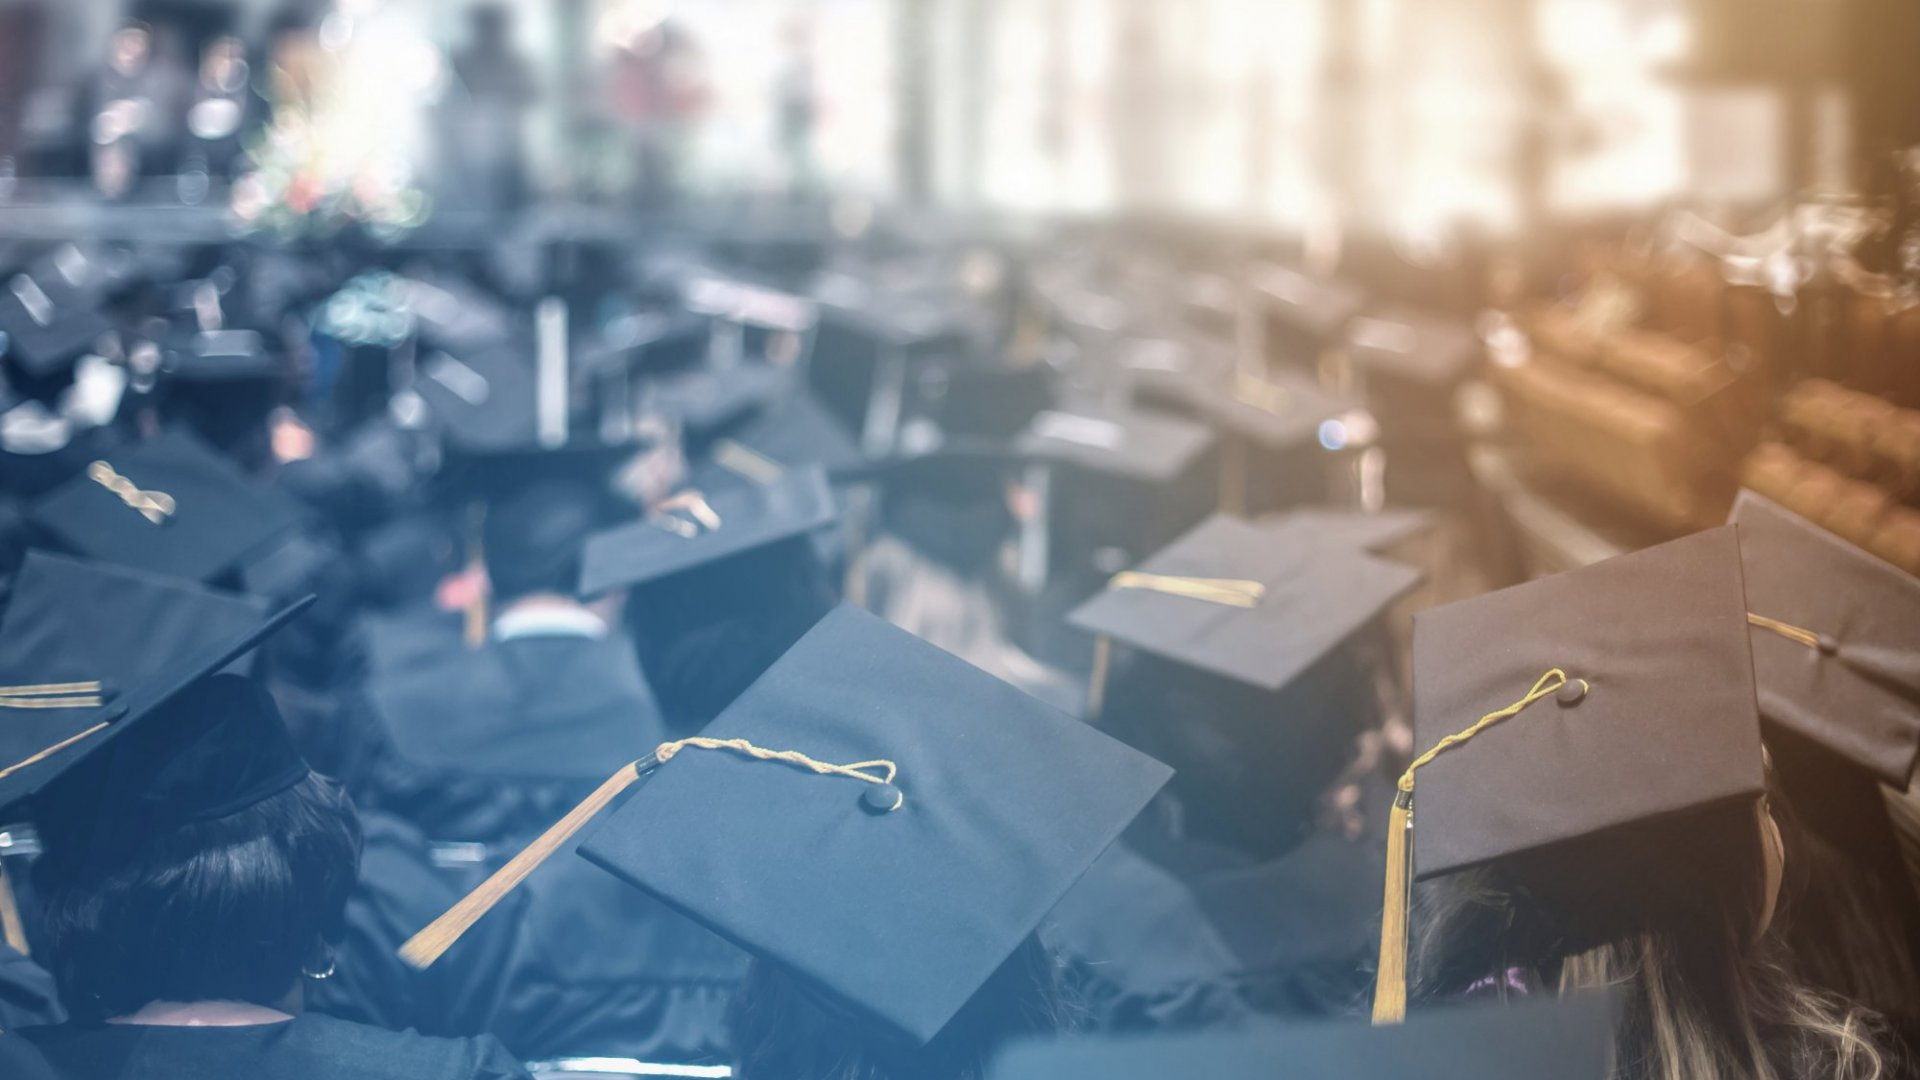 This College Graduation Speech Got a Spontaneous Standing Ovation. Here's Why.